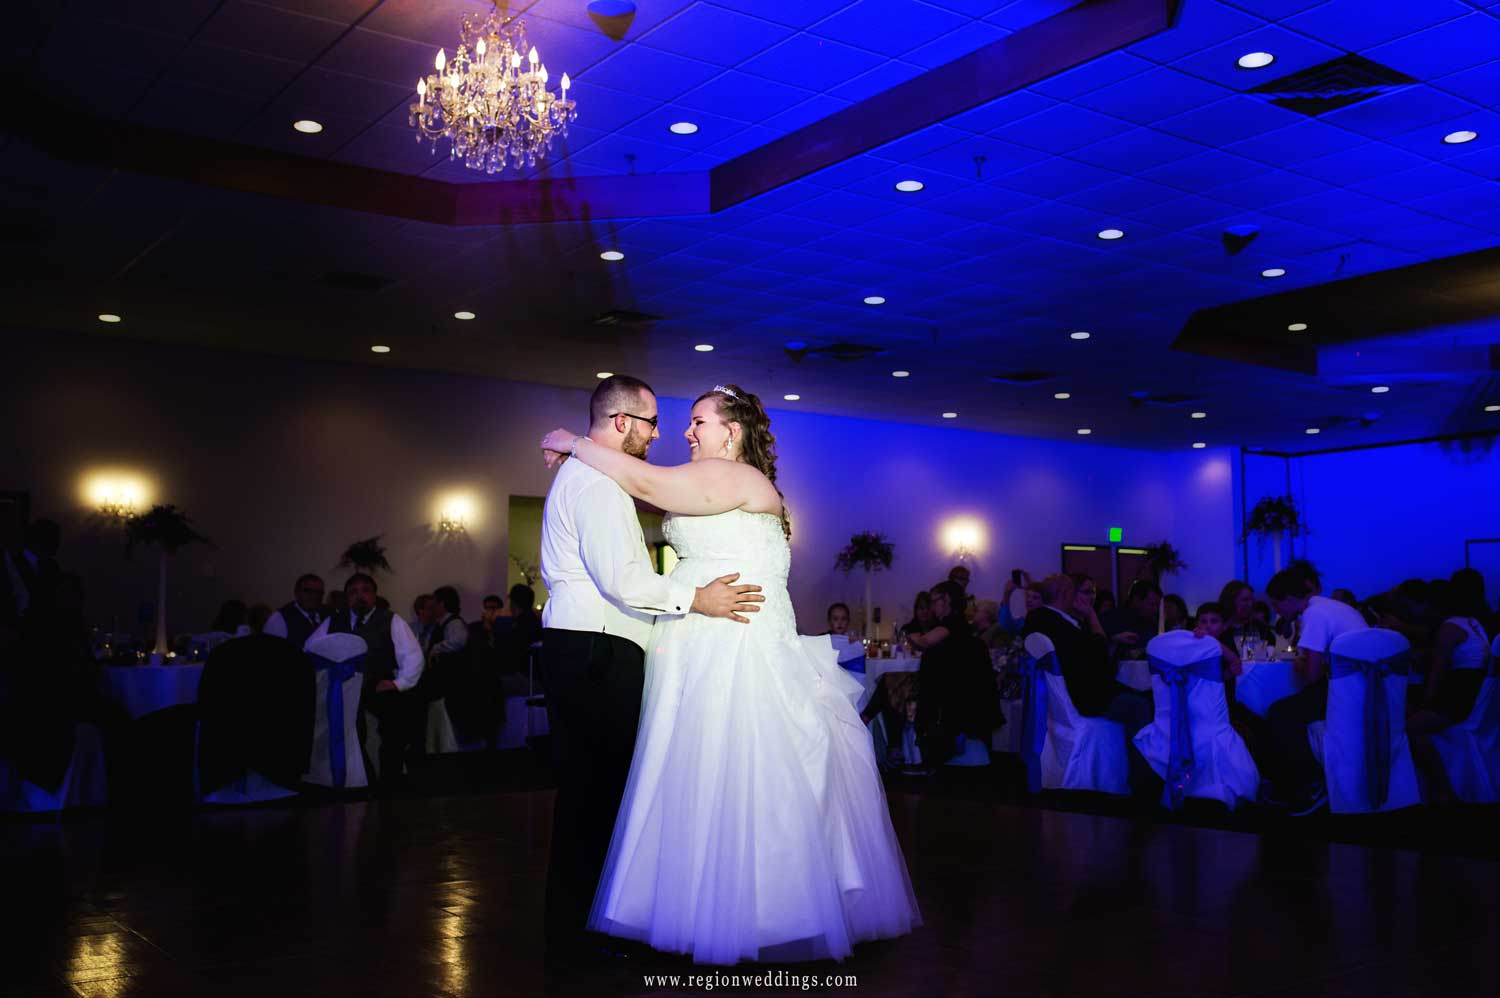 First dance awash with purple and blue uplighting.